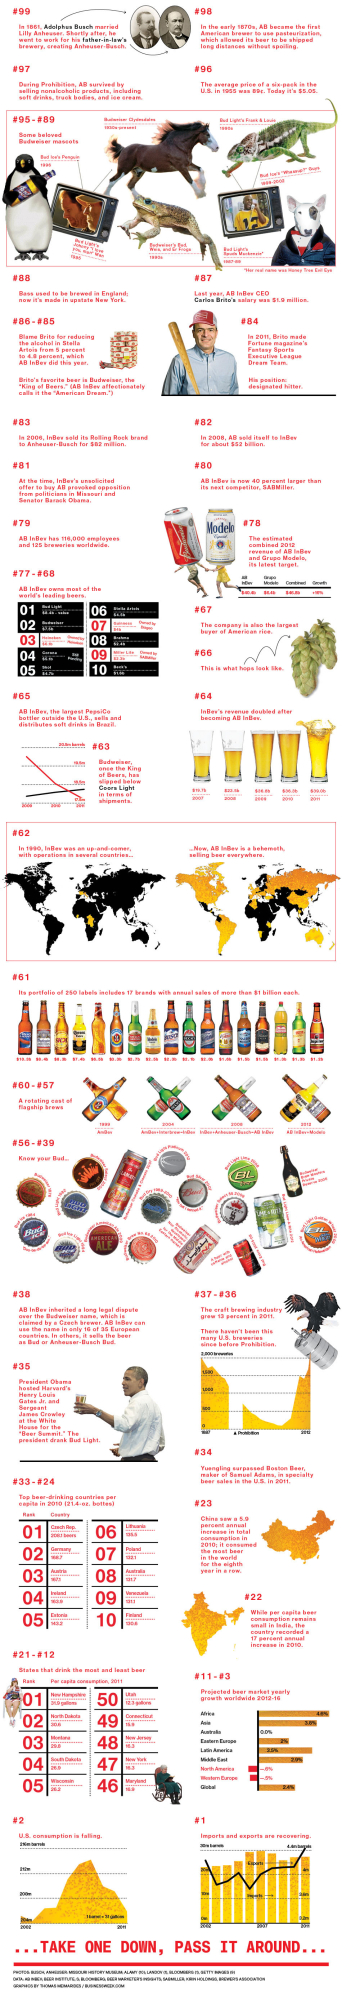 99 Facts About Beer On the Wall...